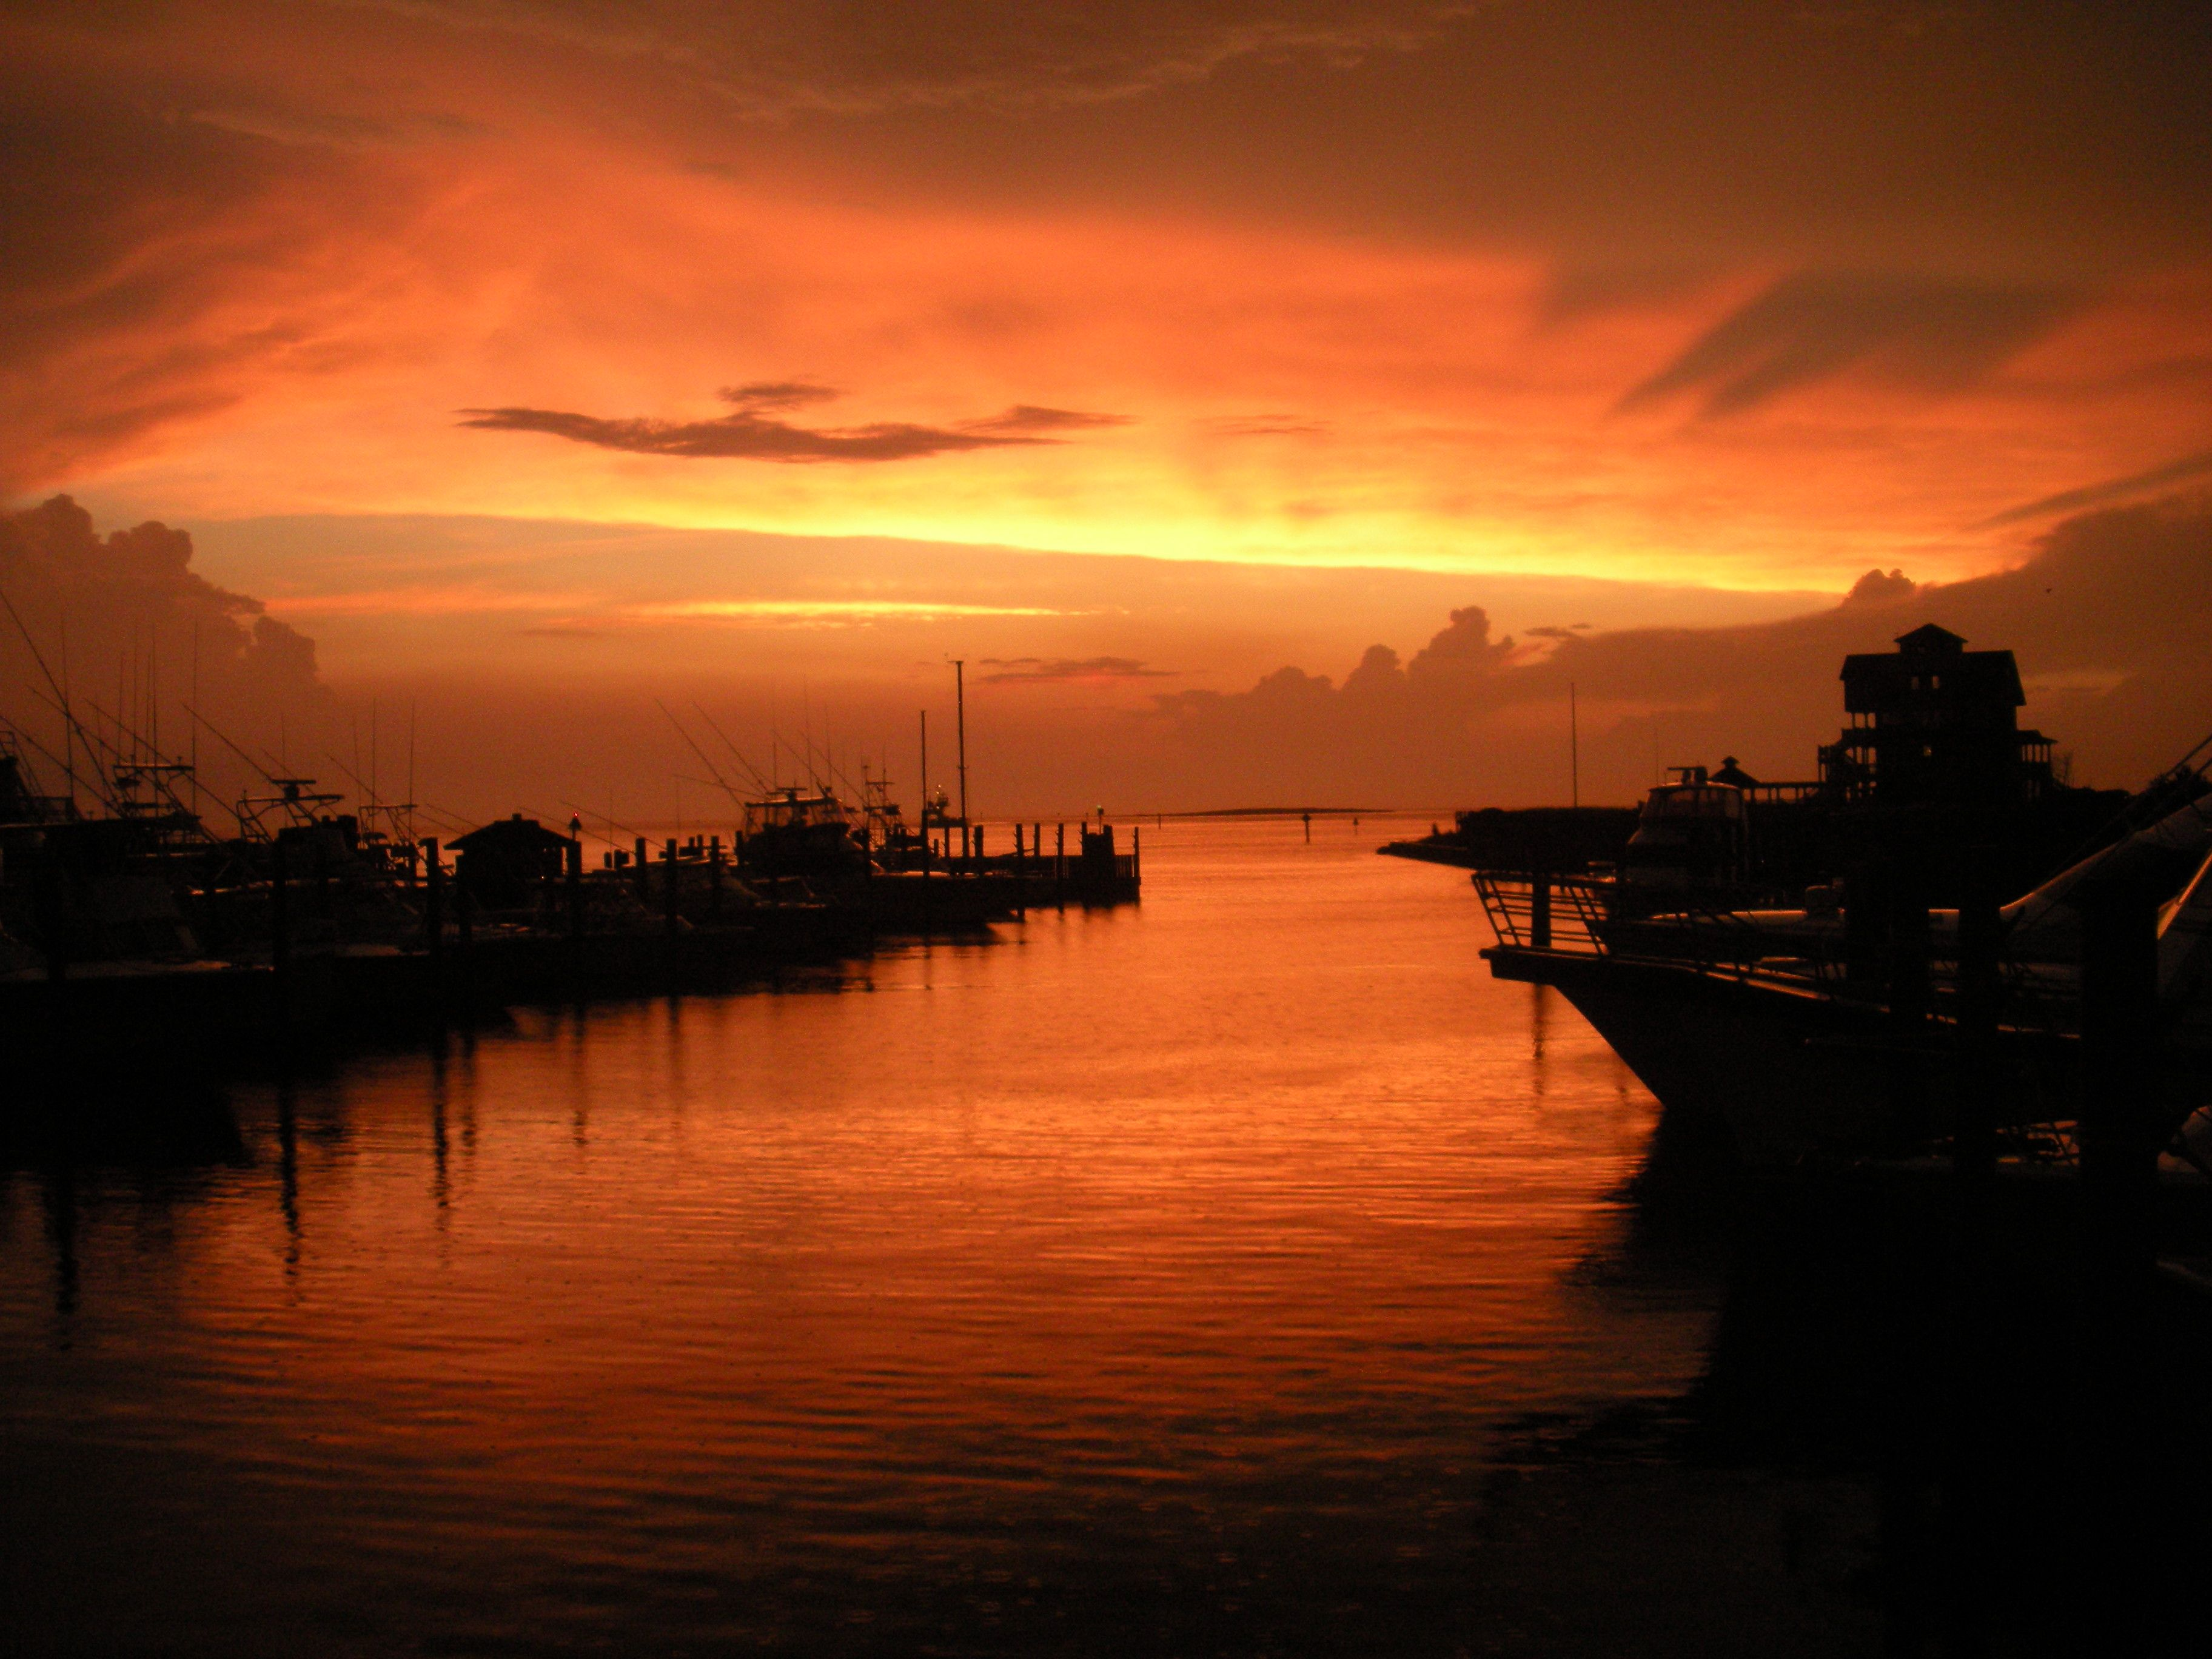 Beautiful sunset on ocracoke island one of the best places ever beautiful sunset on ocracoke island one of the best places ever pj nvjuhfo Gallery